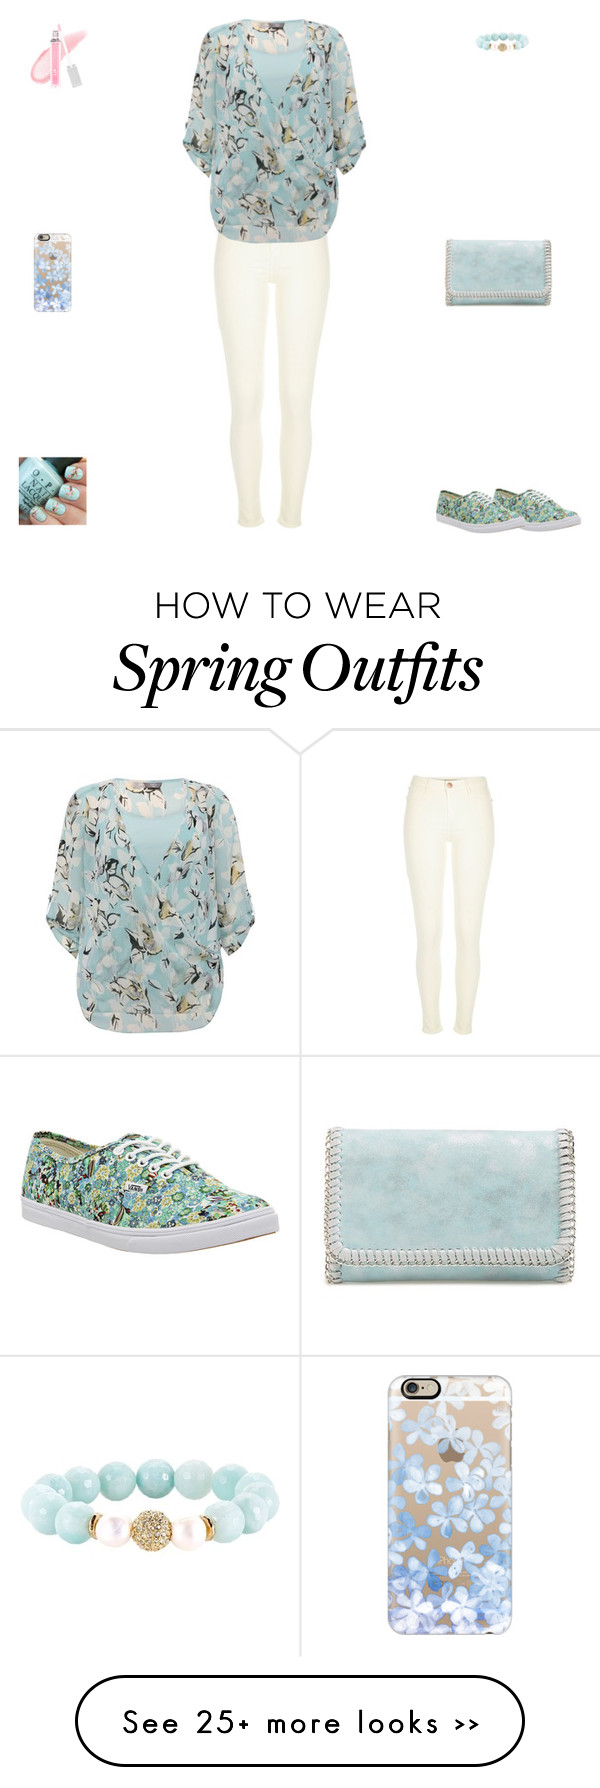 """""""Contest: White & Pastel Blue Floral Outfit"""" by billsacred on Polyvore featuring Vans, Casetify, River Island, M&Co, Chelsea28, Devoted and FusionBeauty"""